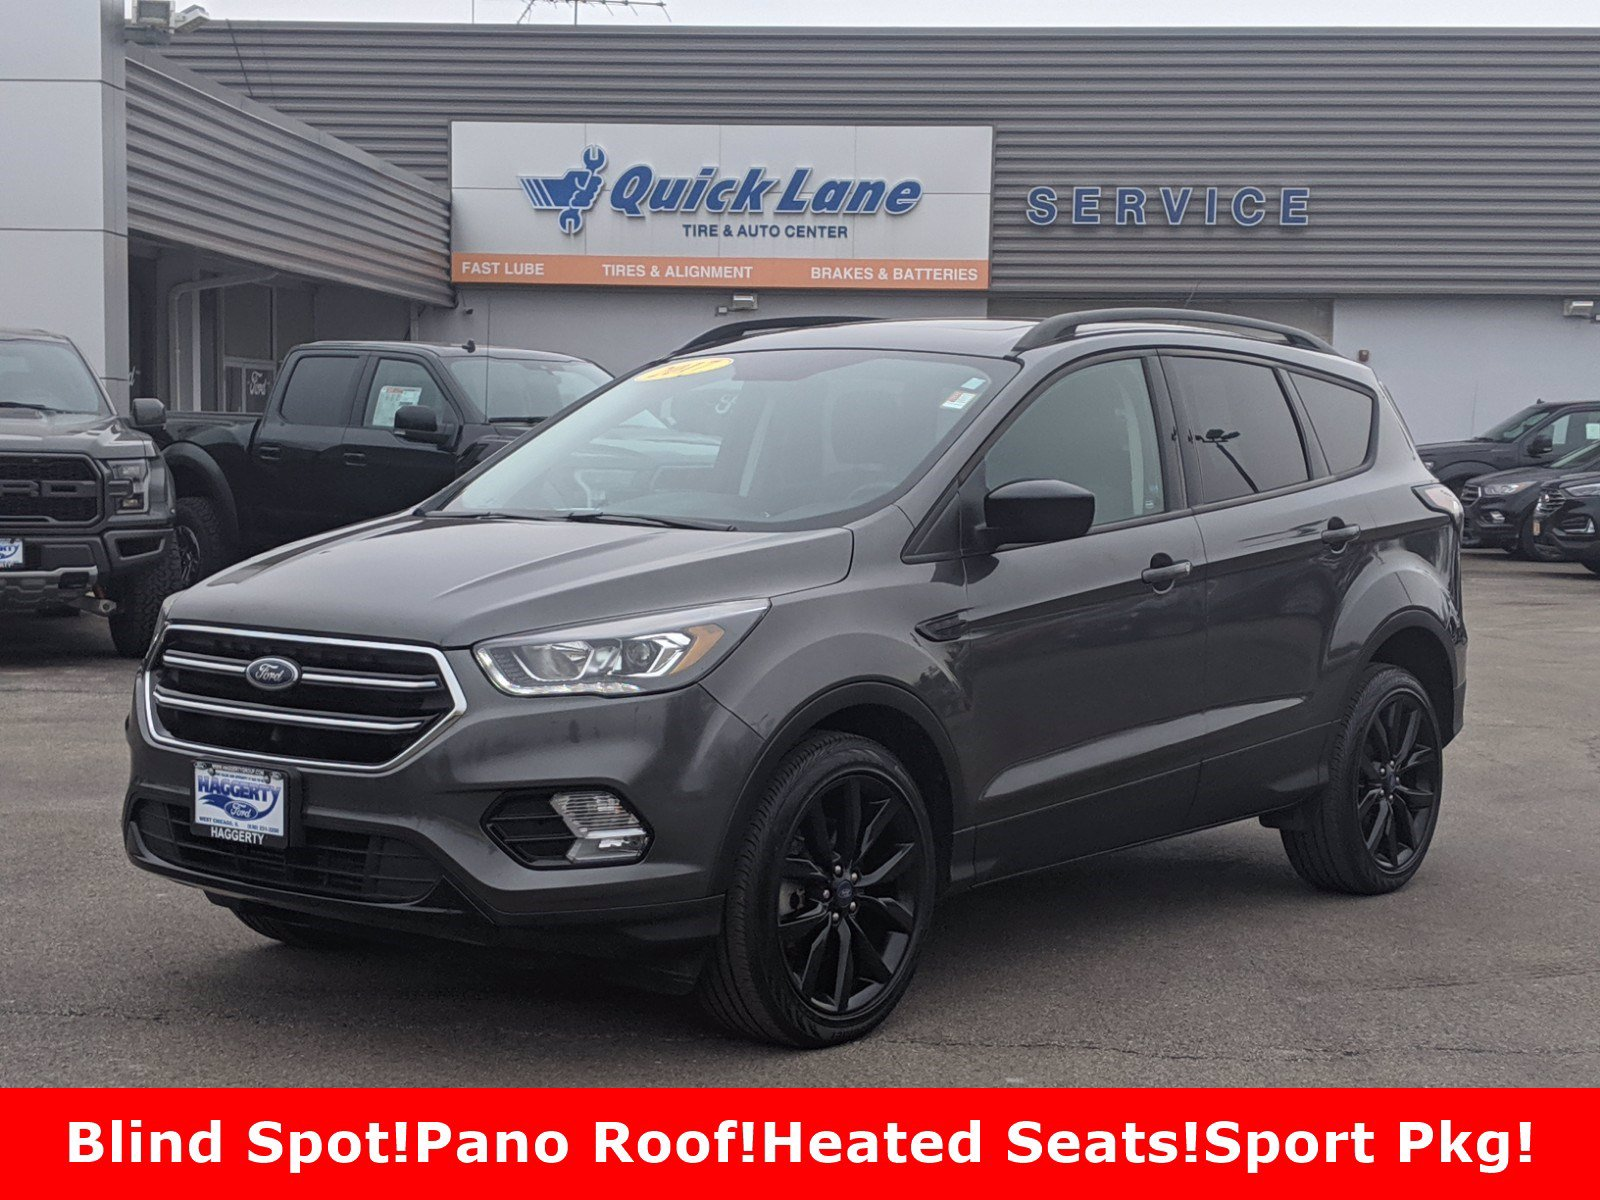 Certified Pre-Owned 2017 Ford Escape SE 4WD